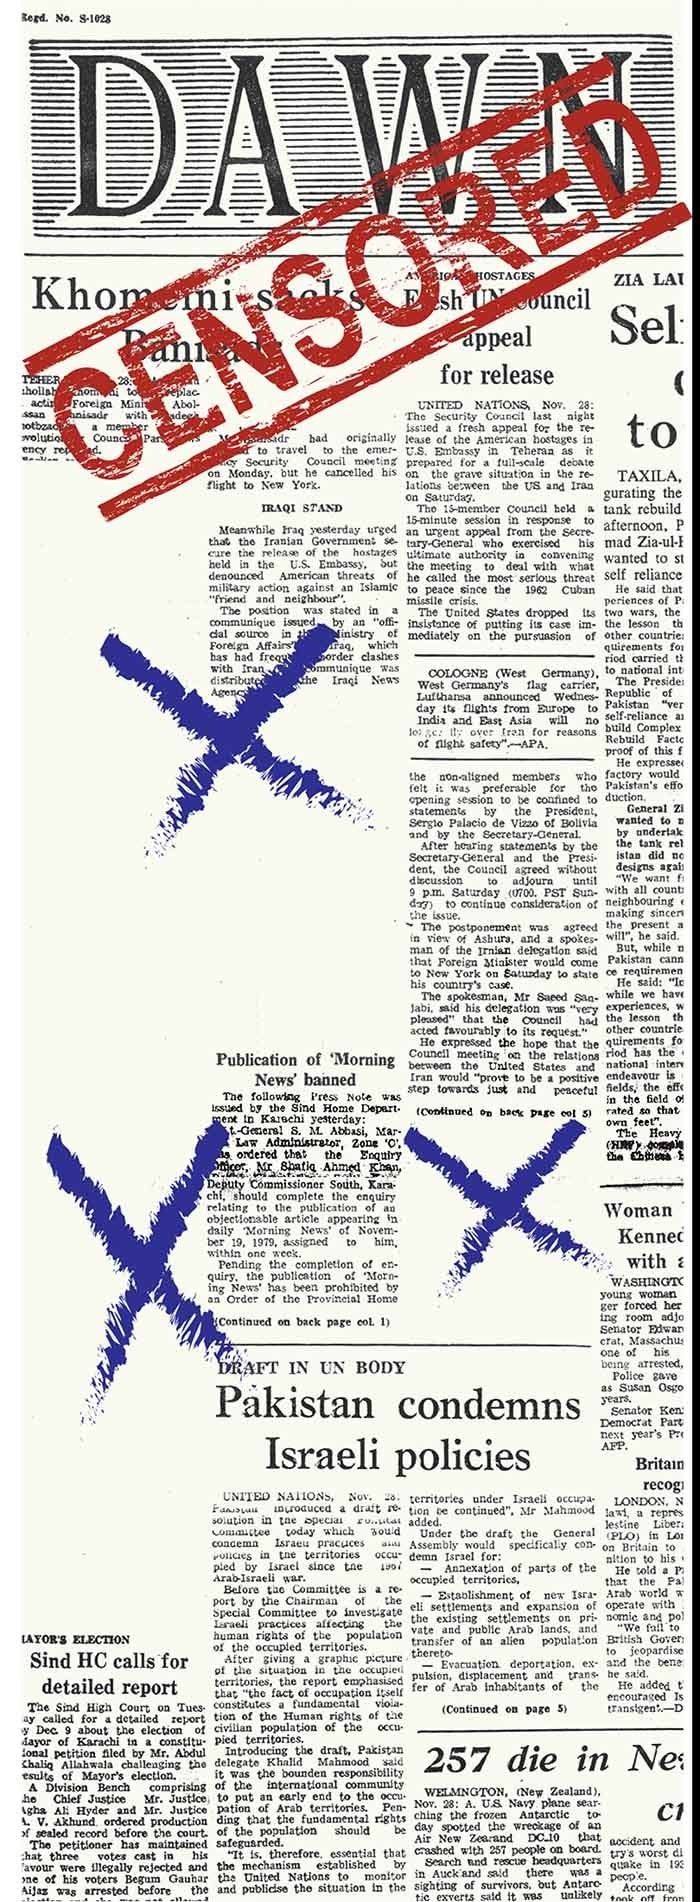 Leaving blank space on news pages depict the manner in which the national press tried to convey its plight to the readers during the Zia era.